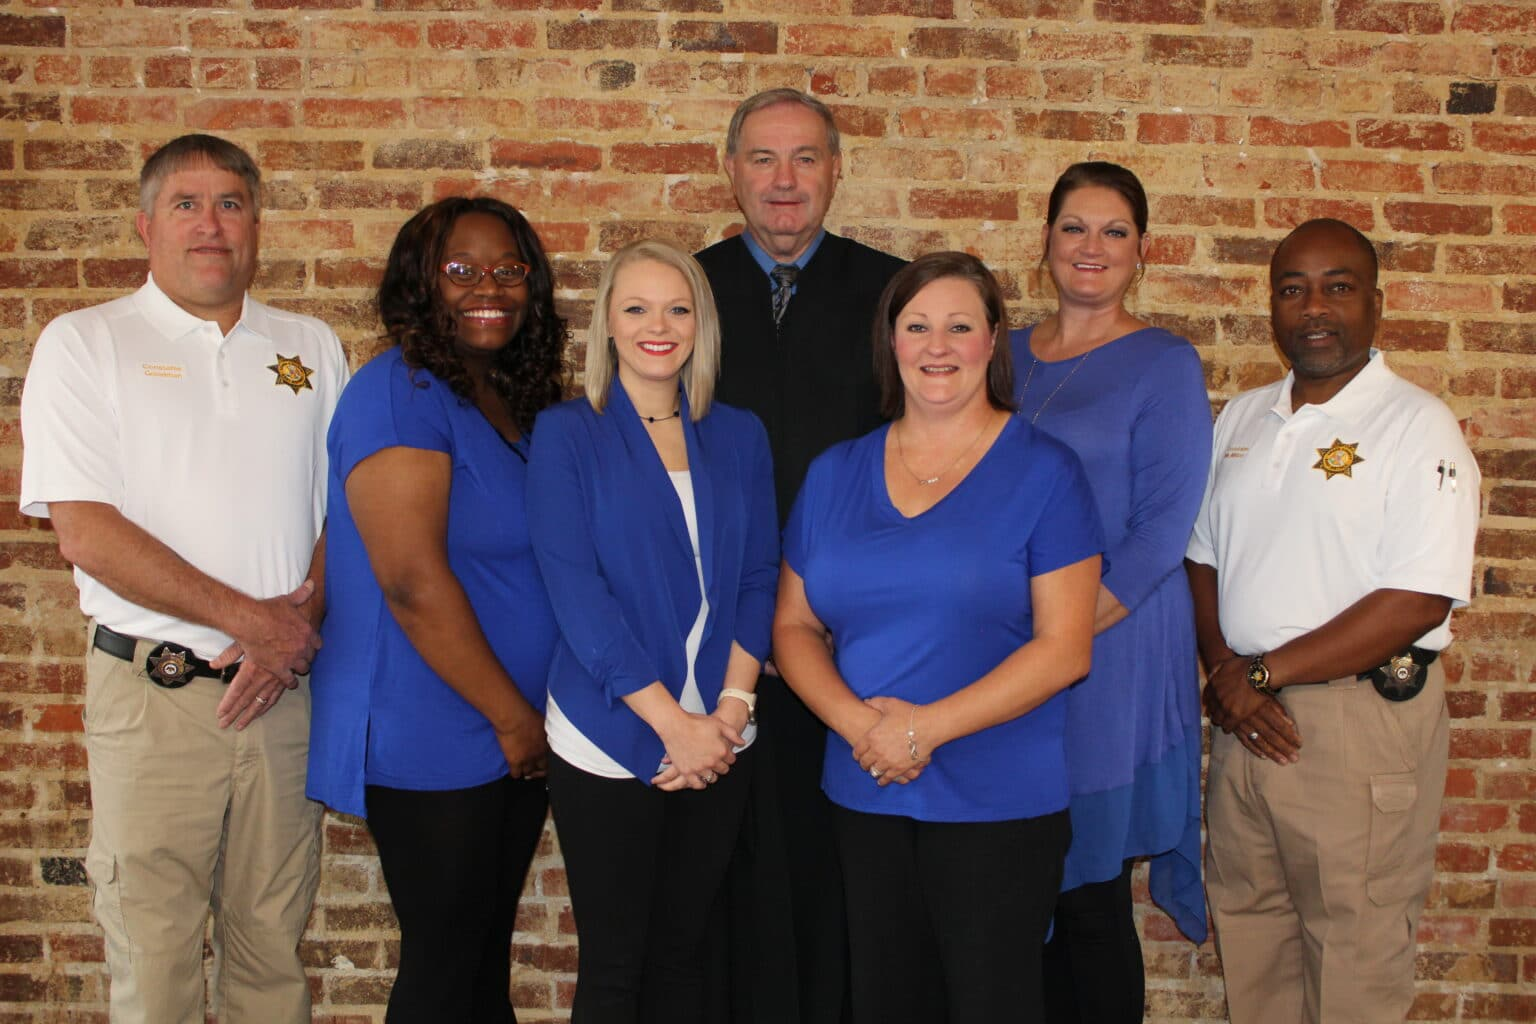 Leake County Justice Court and staff